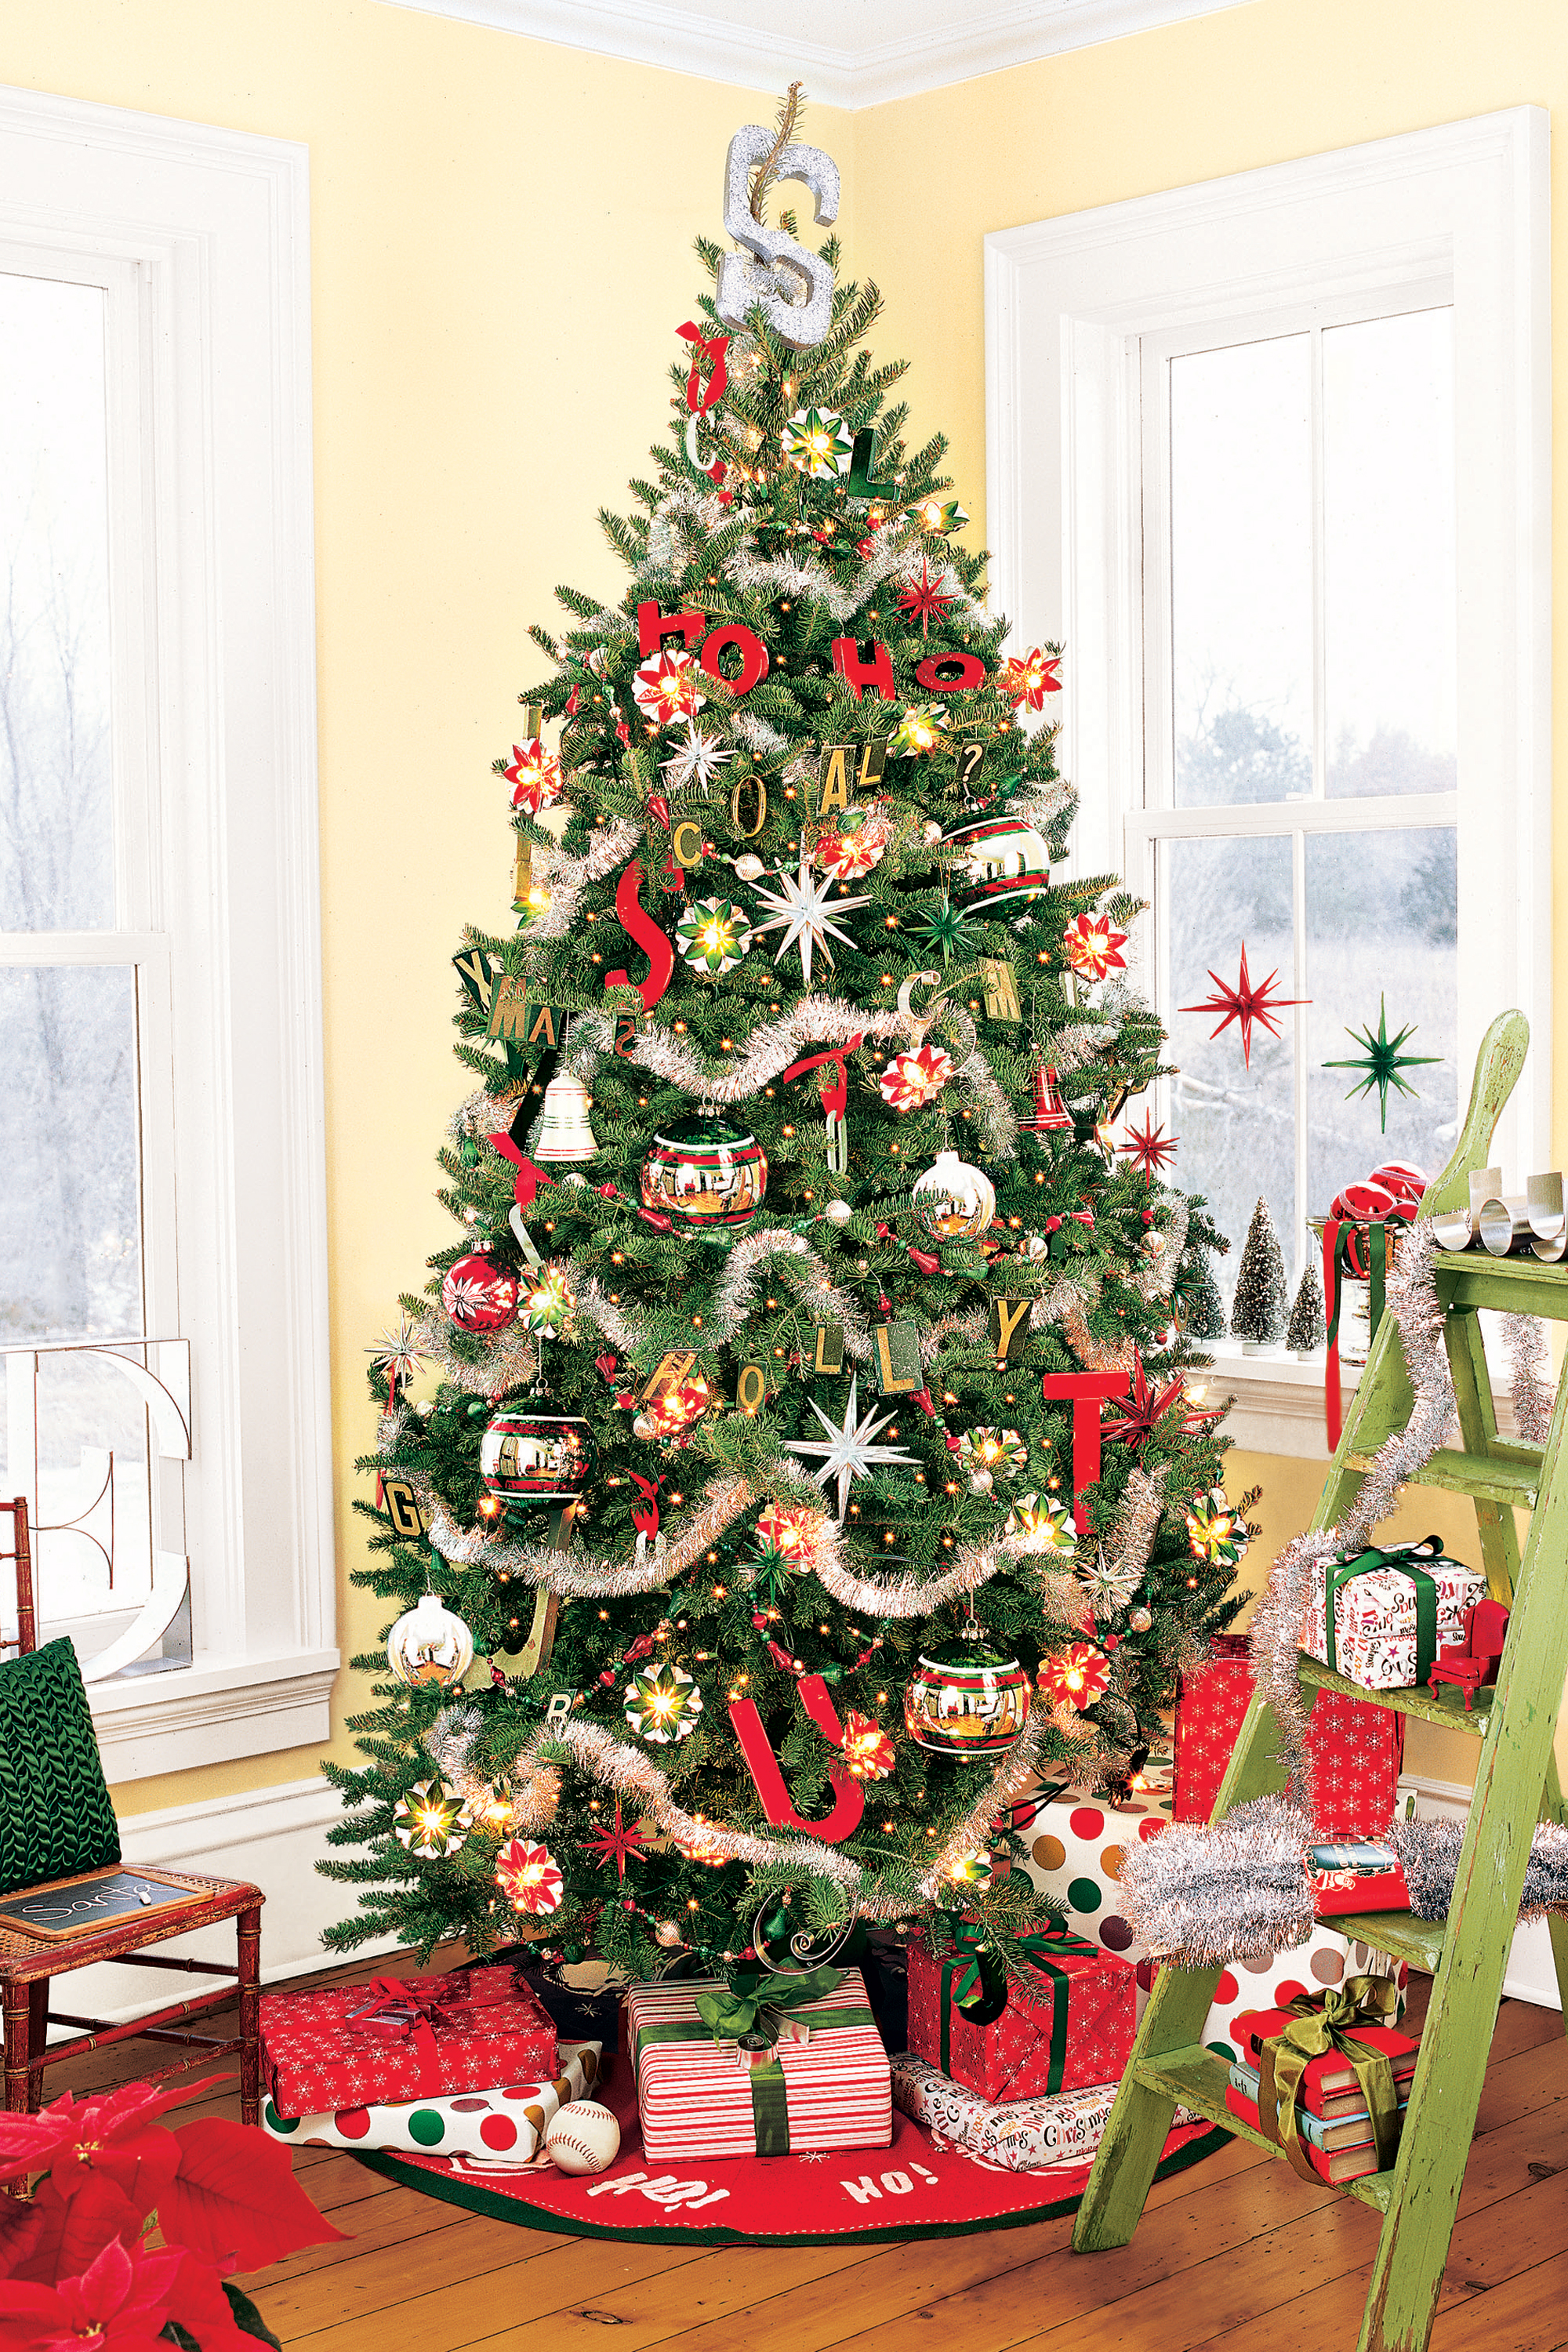 Best Christmas Tree Decorating Ideas How To Decorate A - Best red christmas decor ideas